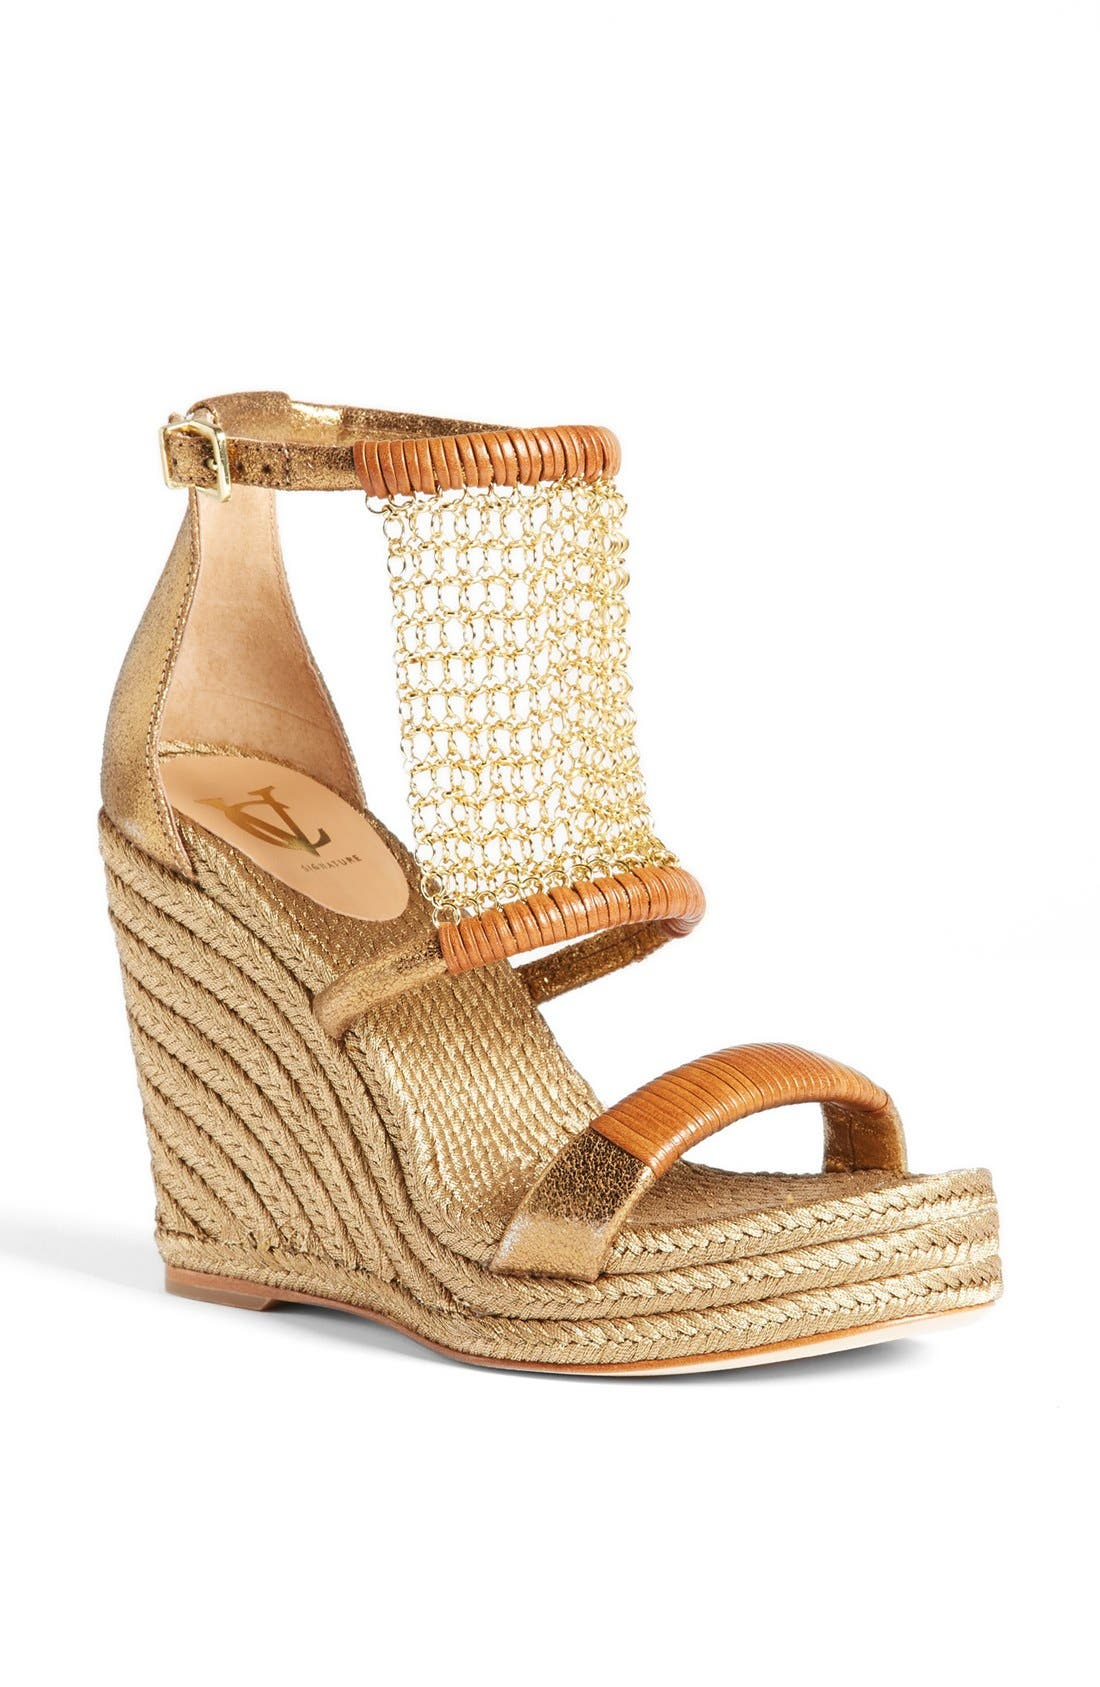 Alternate Image 1 Selected - VC Signature 'Dellah' Wedge Sandal